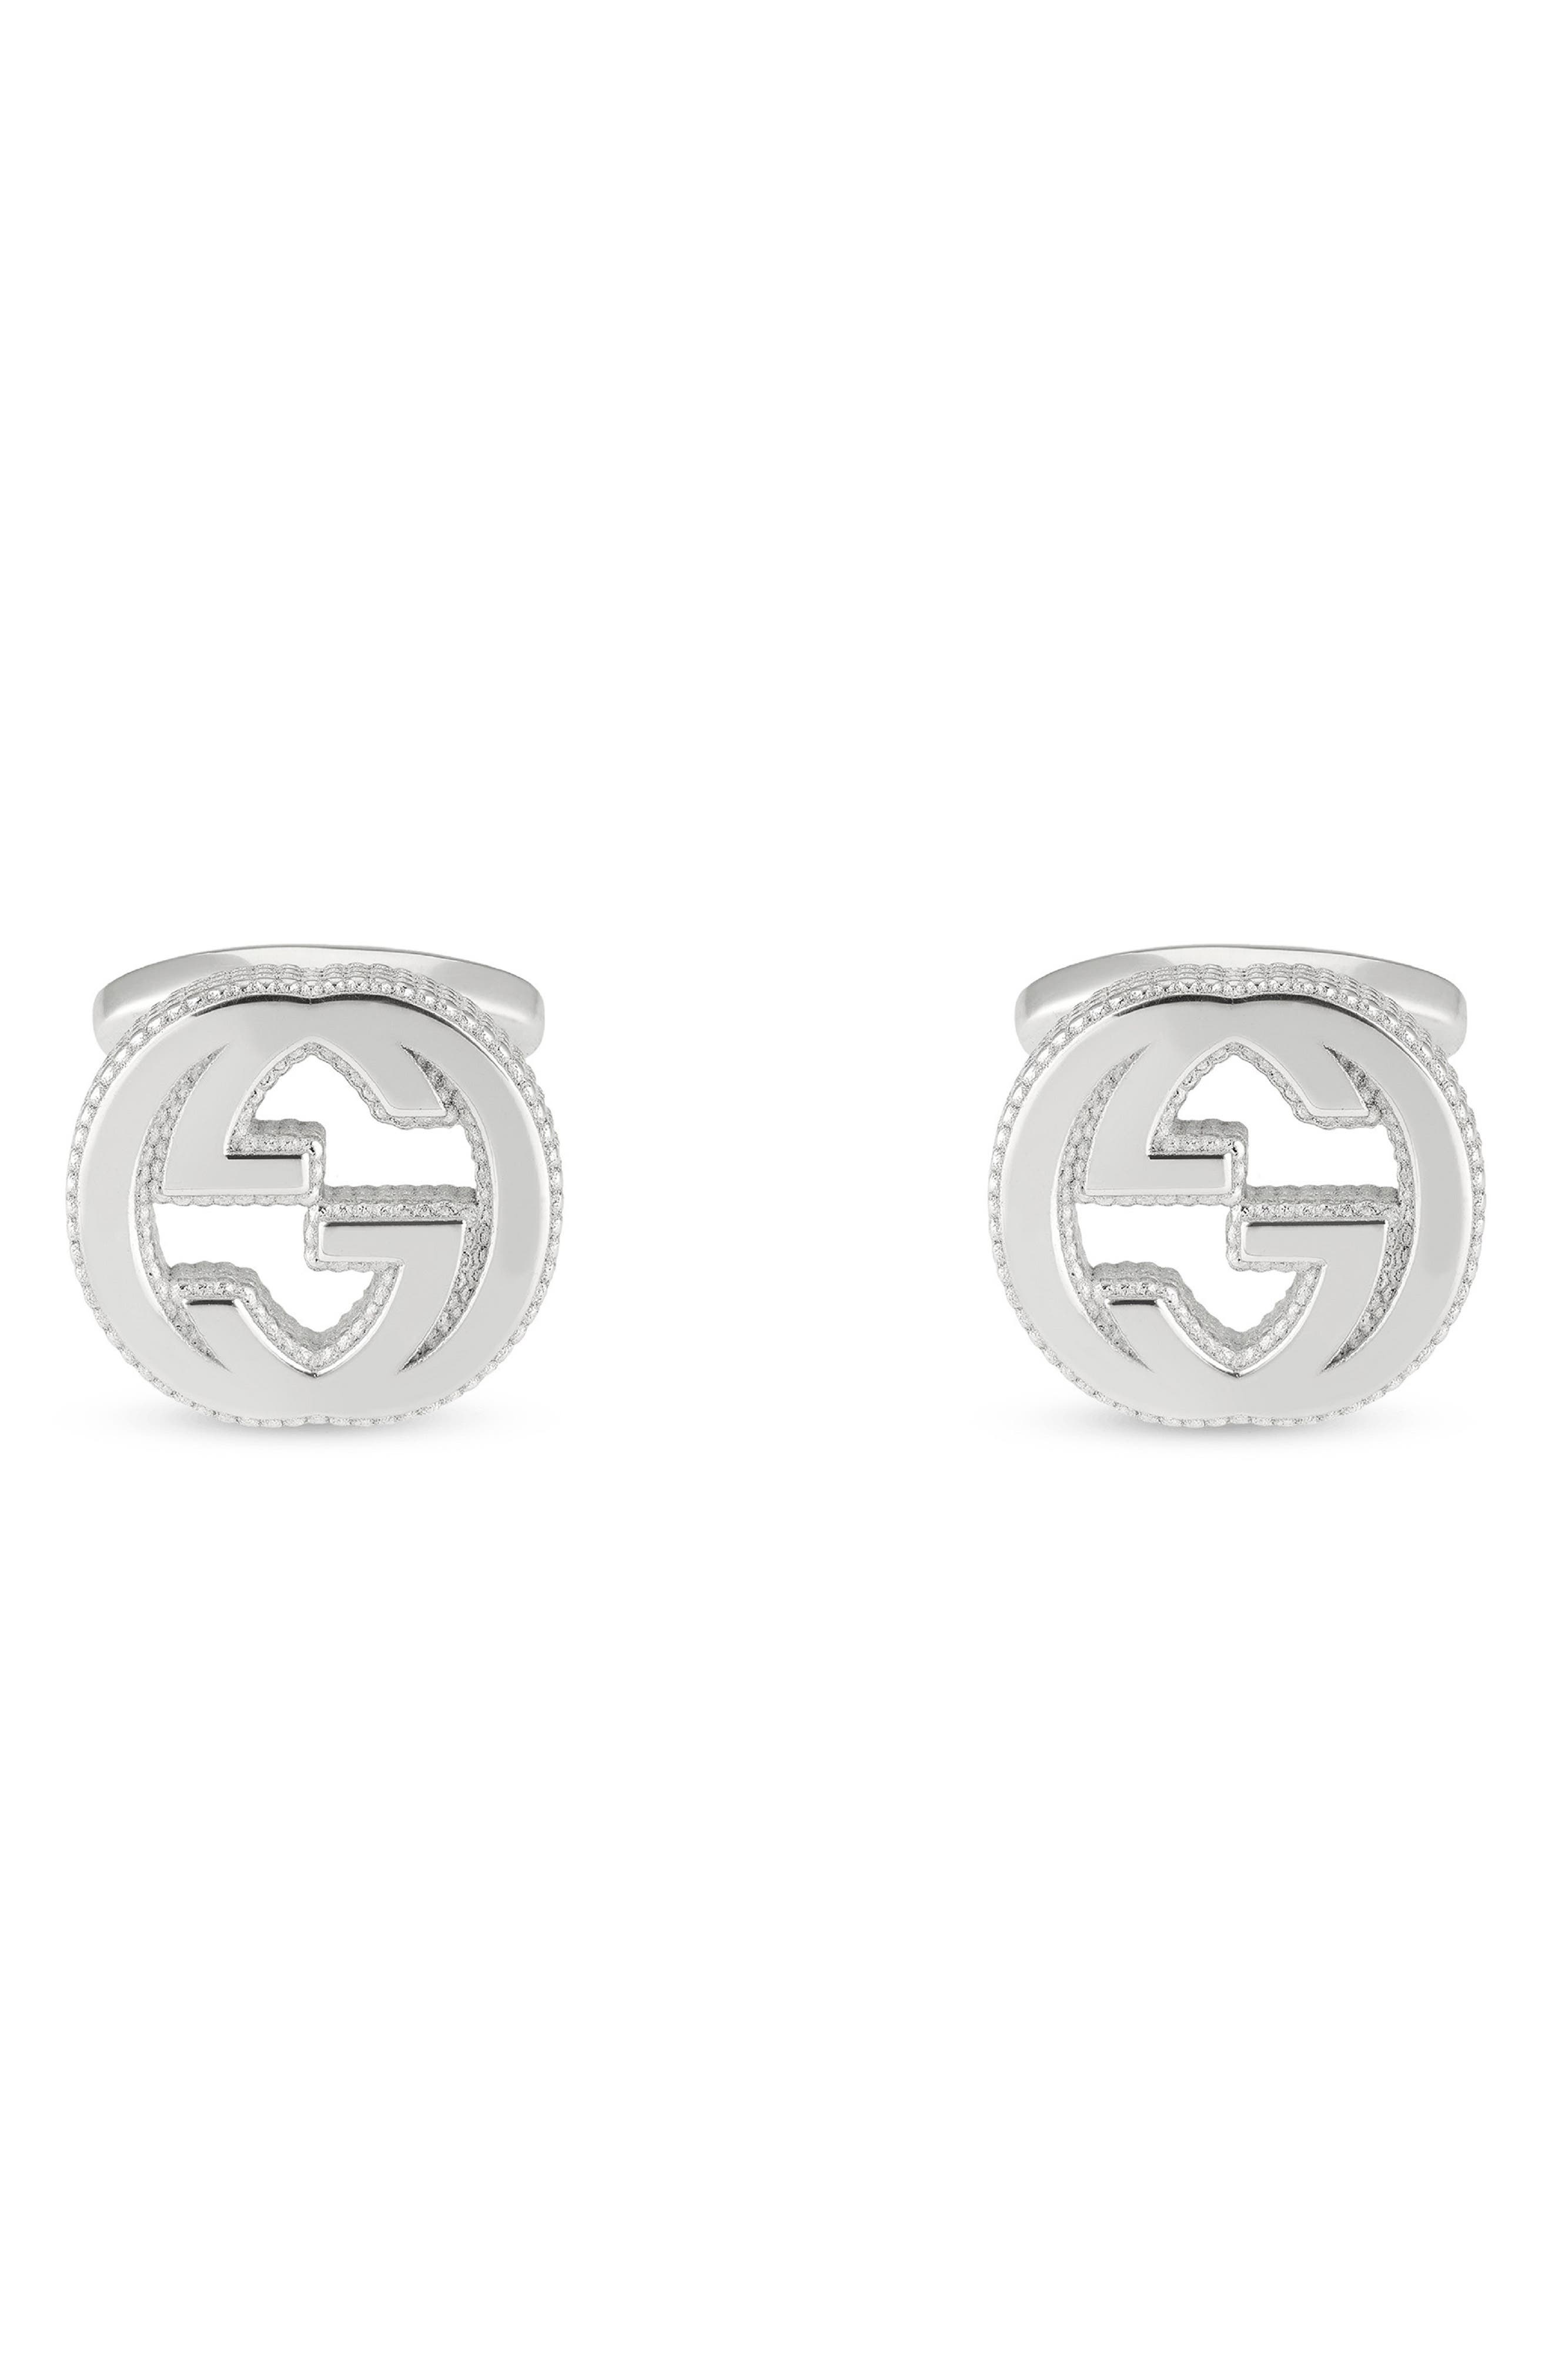 Double-G Cuff Links,                             Main thumbnail 1, color,                             040